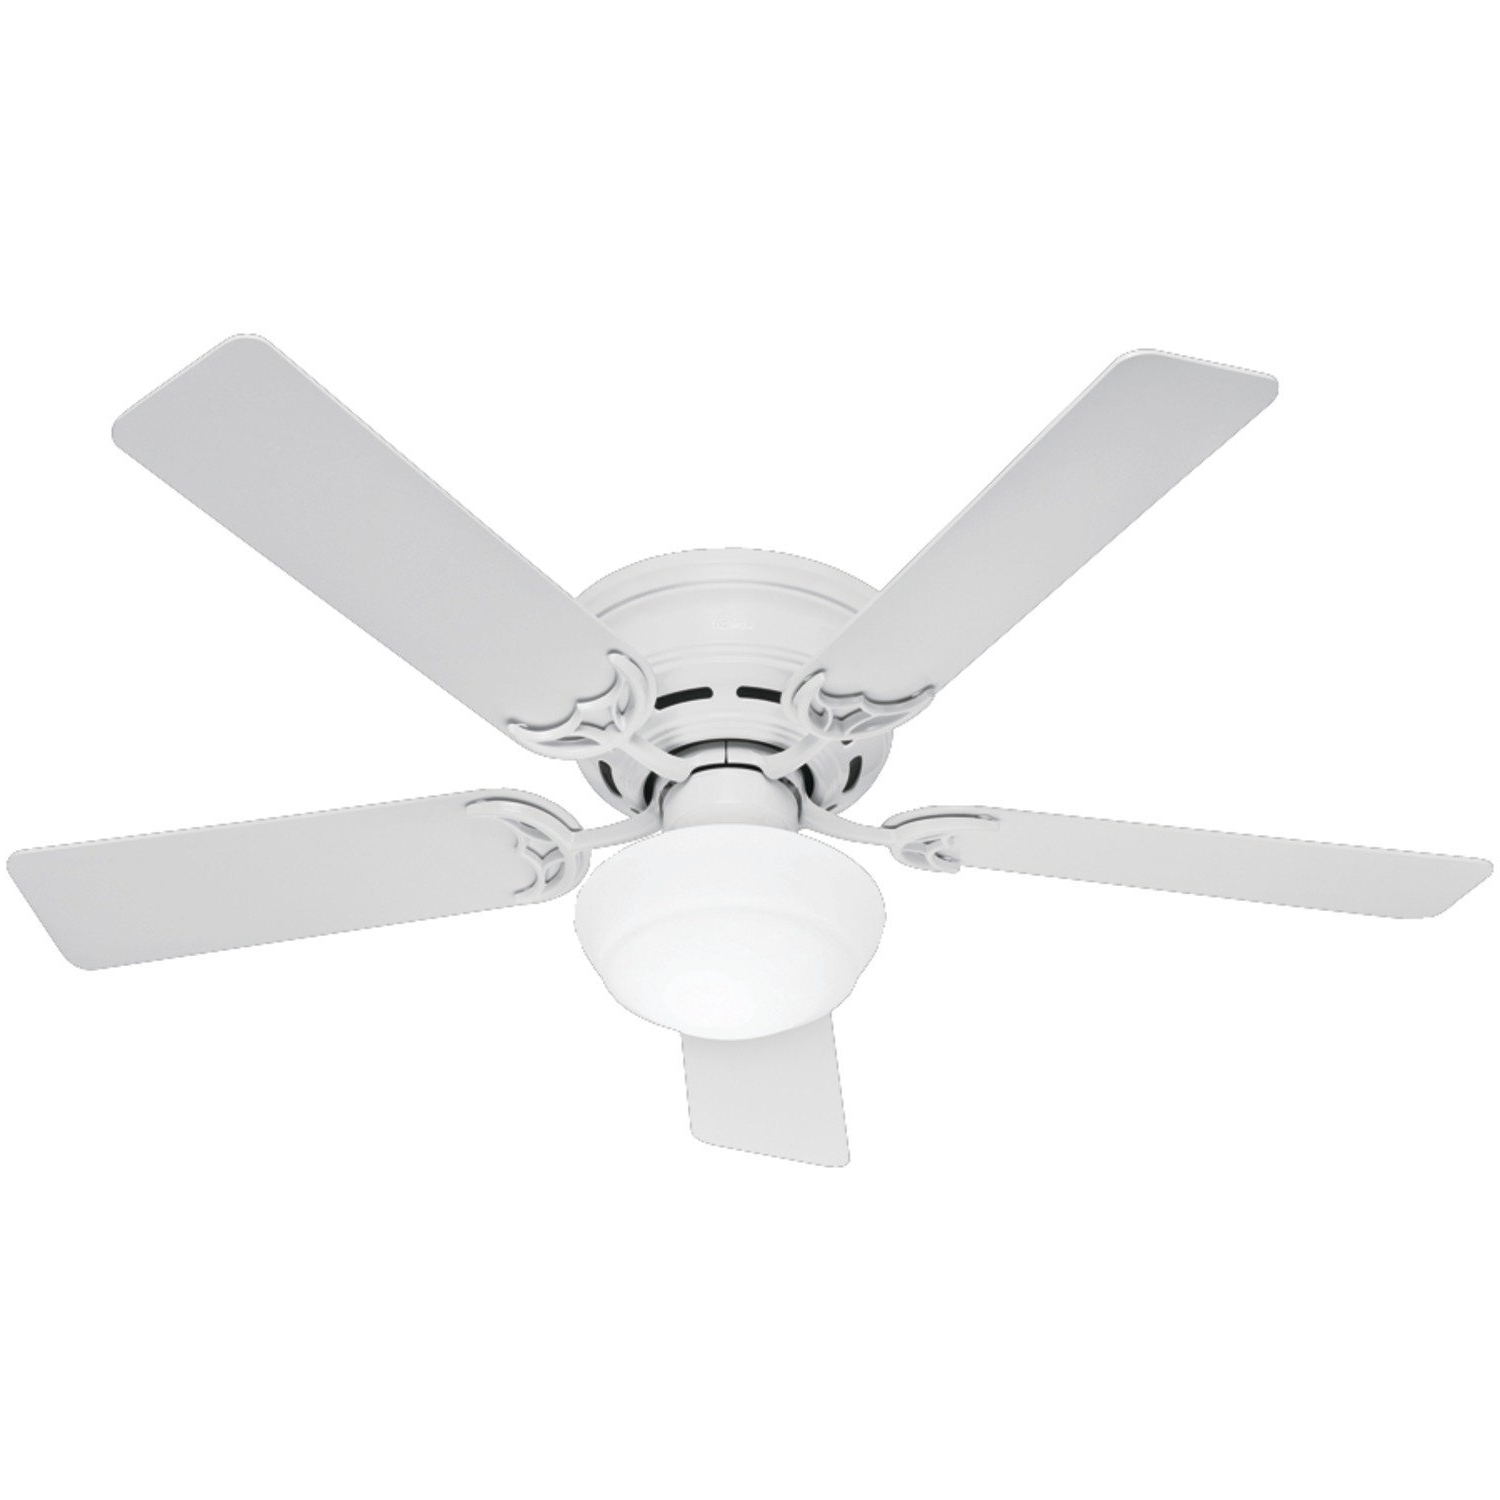 Decor On The Line Regarding Popular Hunter Outdoor Ceiling Fans With White Lights (View 6 of 20)